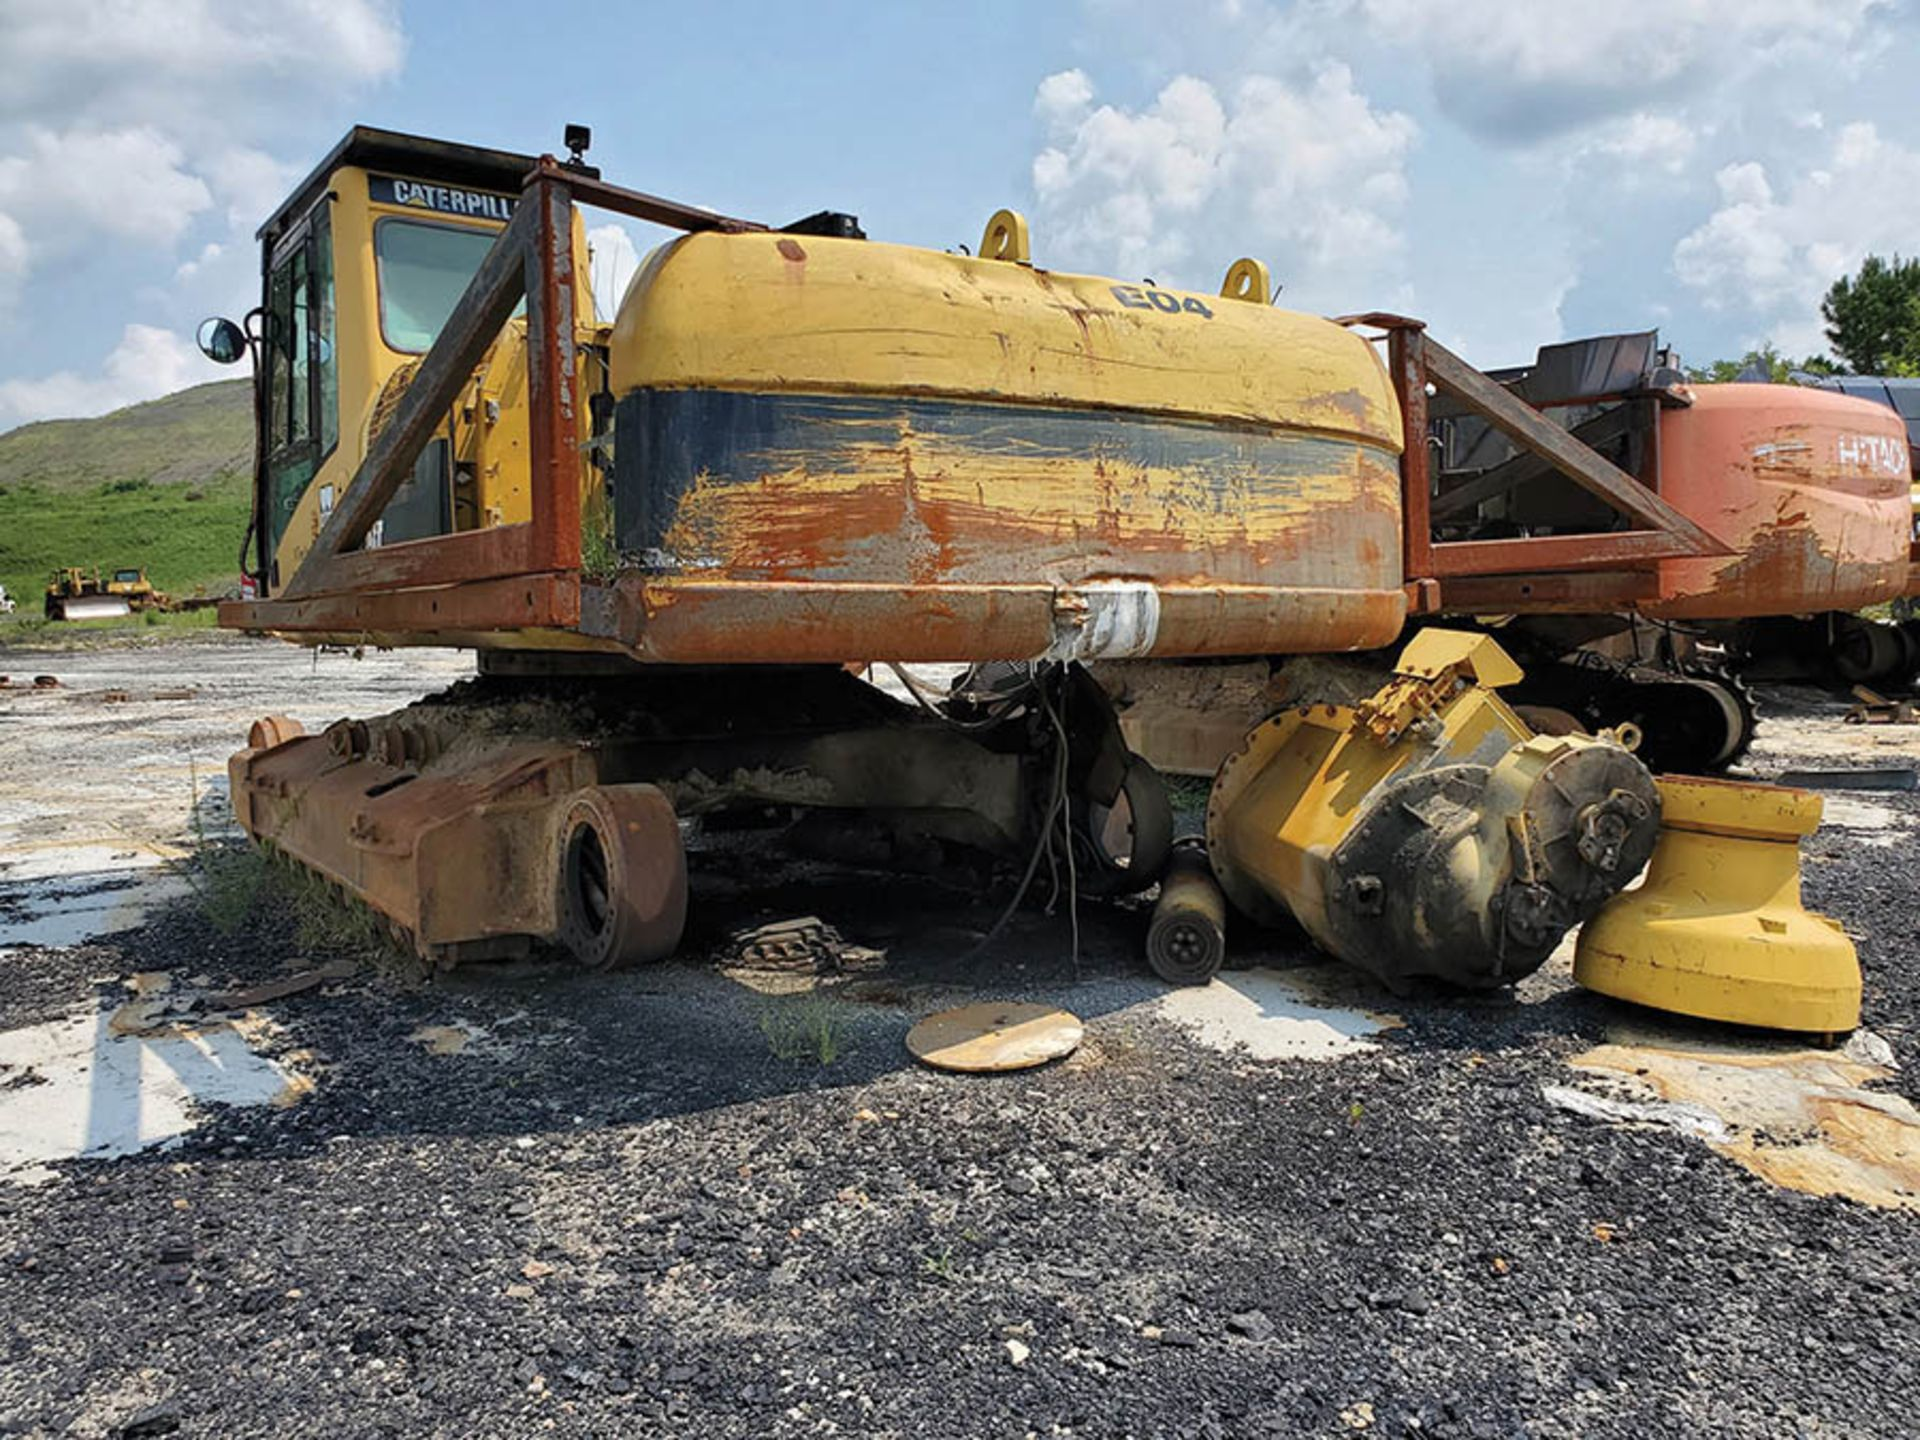 Lot 143 - CATERPILLAR 330 EXCAVATOR FOR PARTS/SCRAP, S/N: CAP00324 (UNIT #E04) LOCATION: UPPER LEVEL BEECH